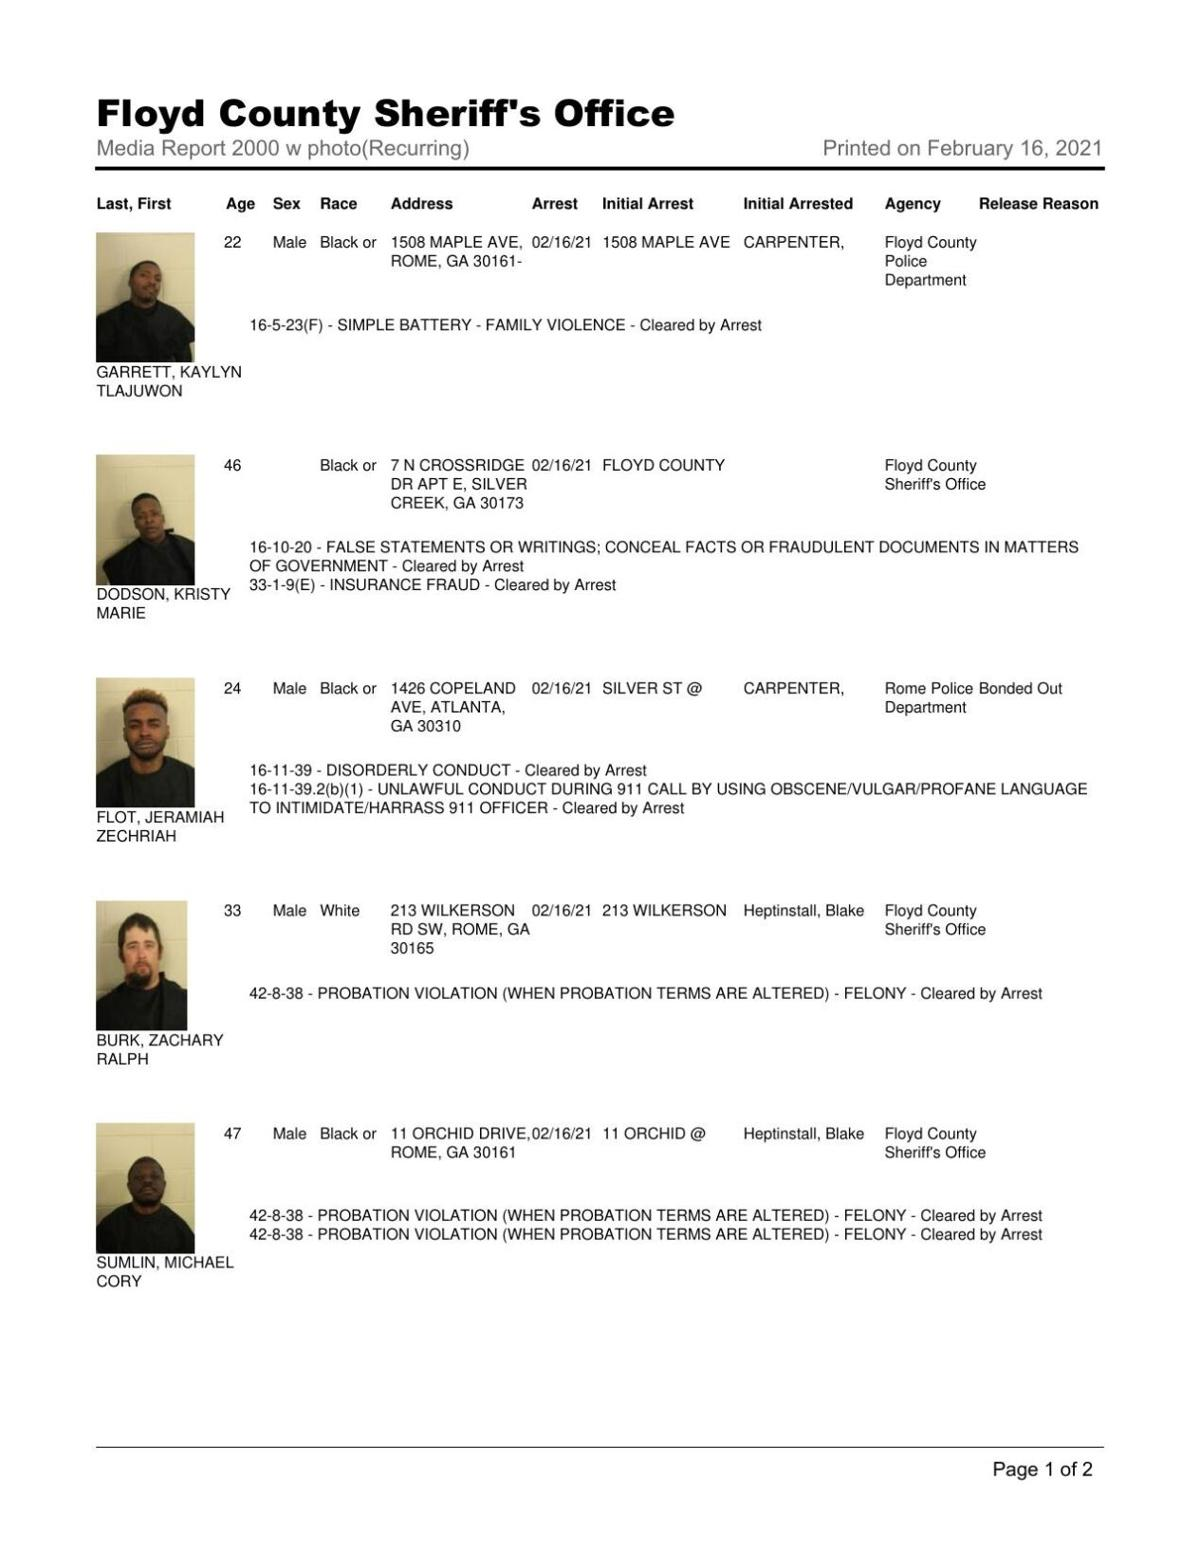 Floyd County Jail report for 8 pm Tuesday, Feb. 16